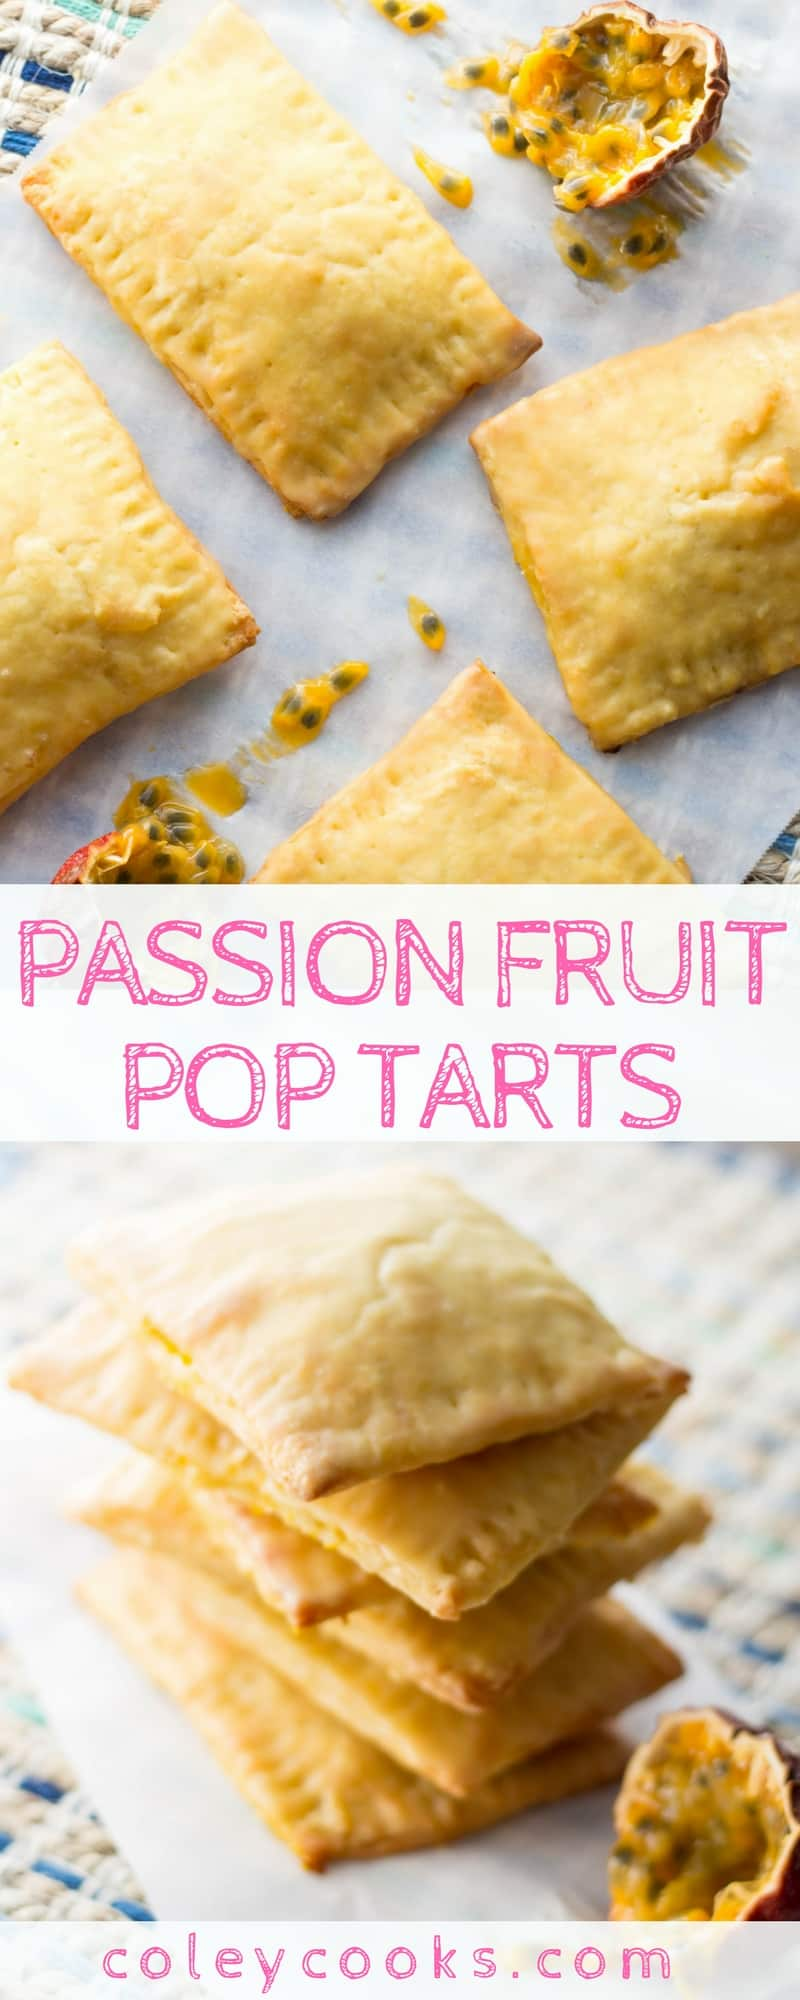 PASSIONFRUIT POP TARTS   Flaky pastries filled with tangy passionfruit curd. This quirky tropical pastry makes an unexpected addition to brunch or makes a fun dessert!   ColeyCooks.com